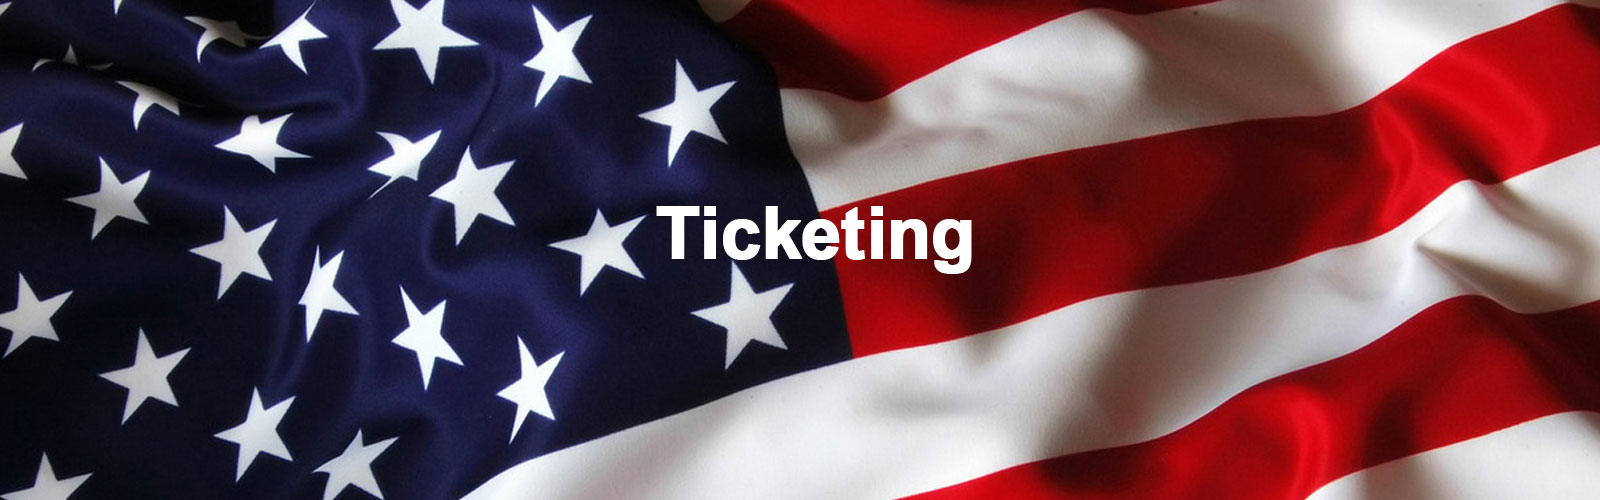 ticketing-usa